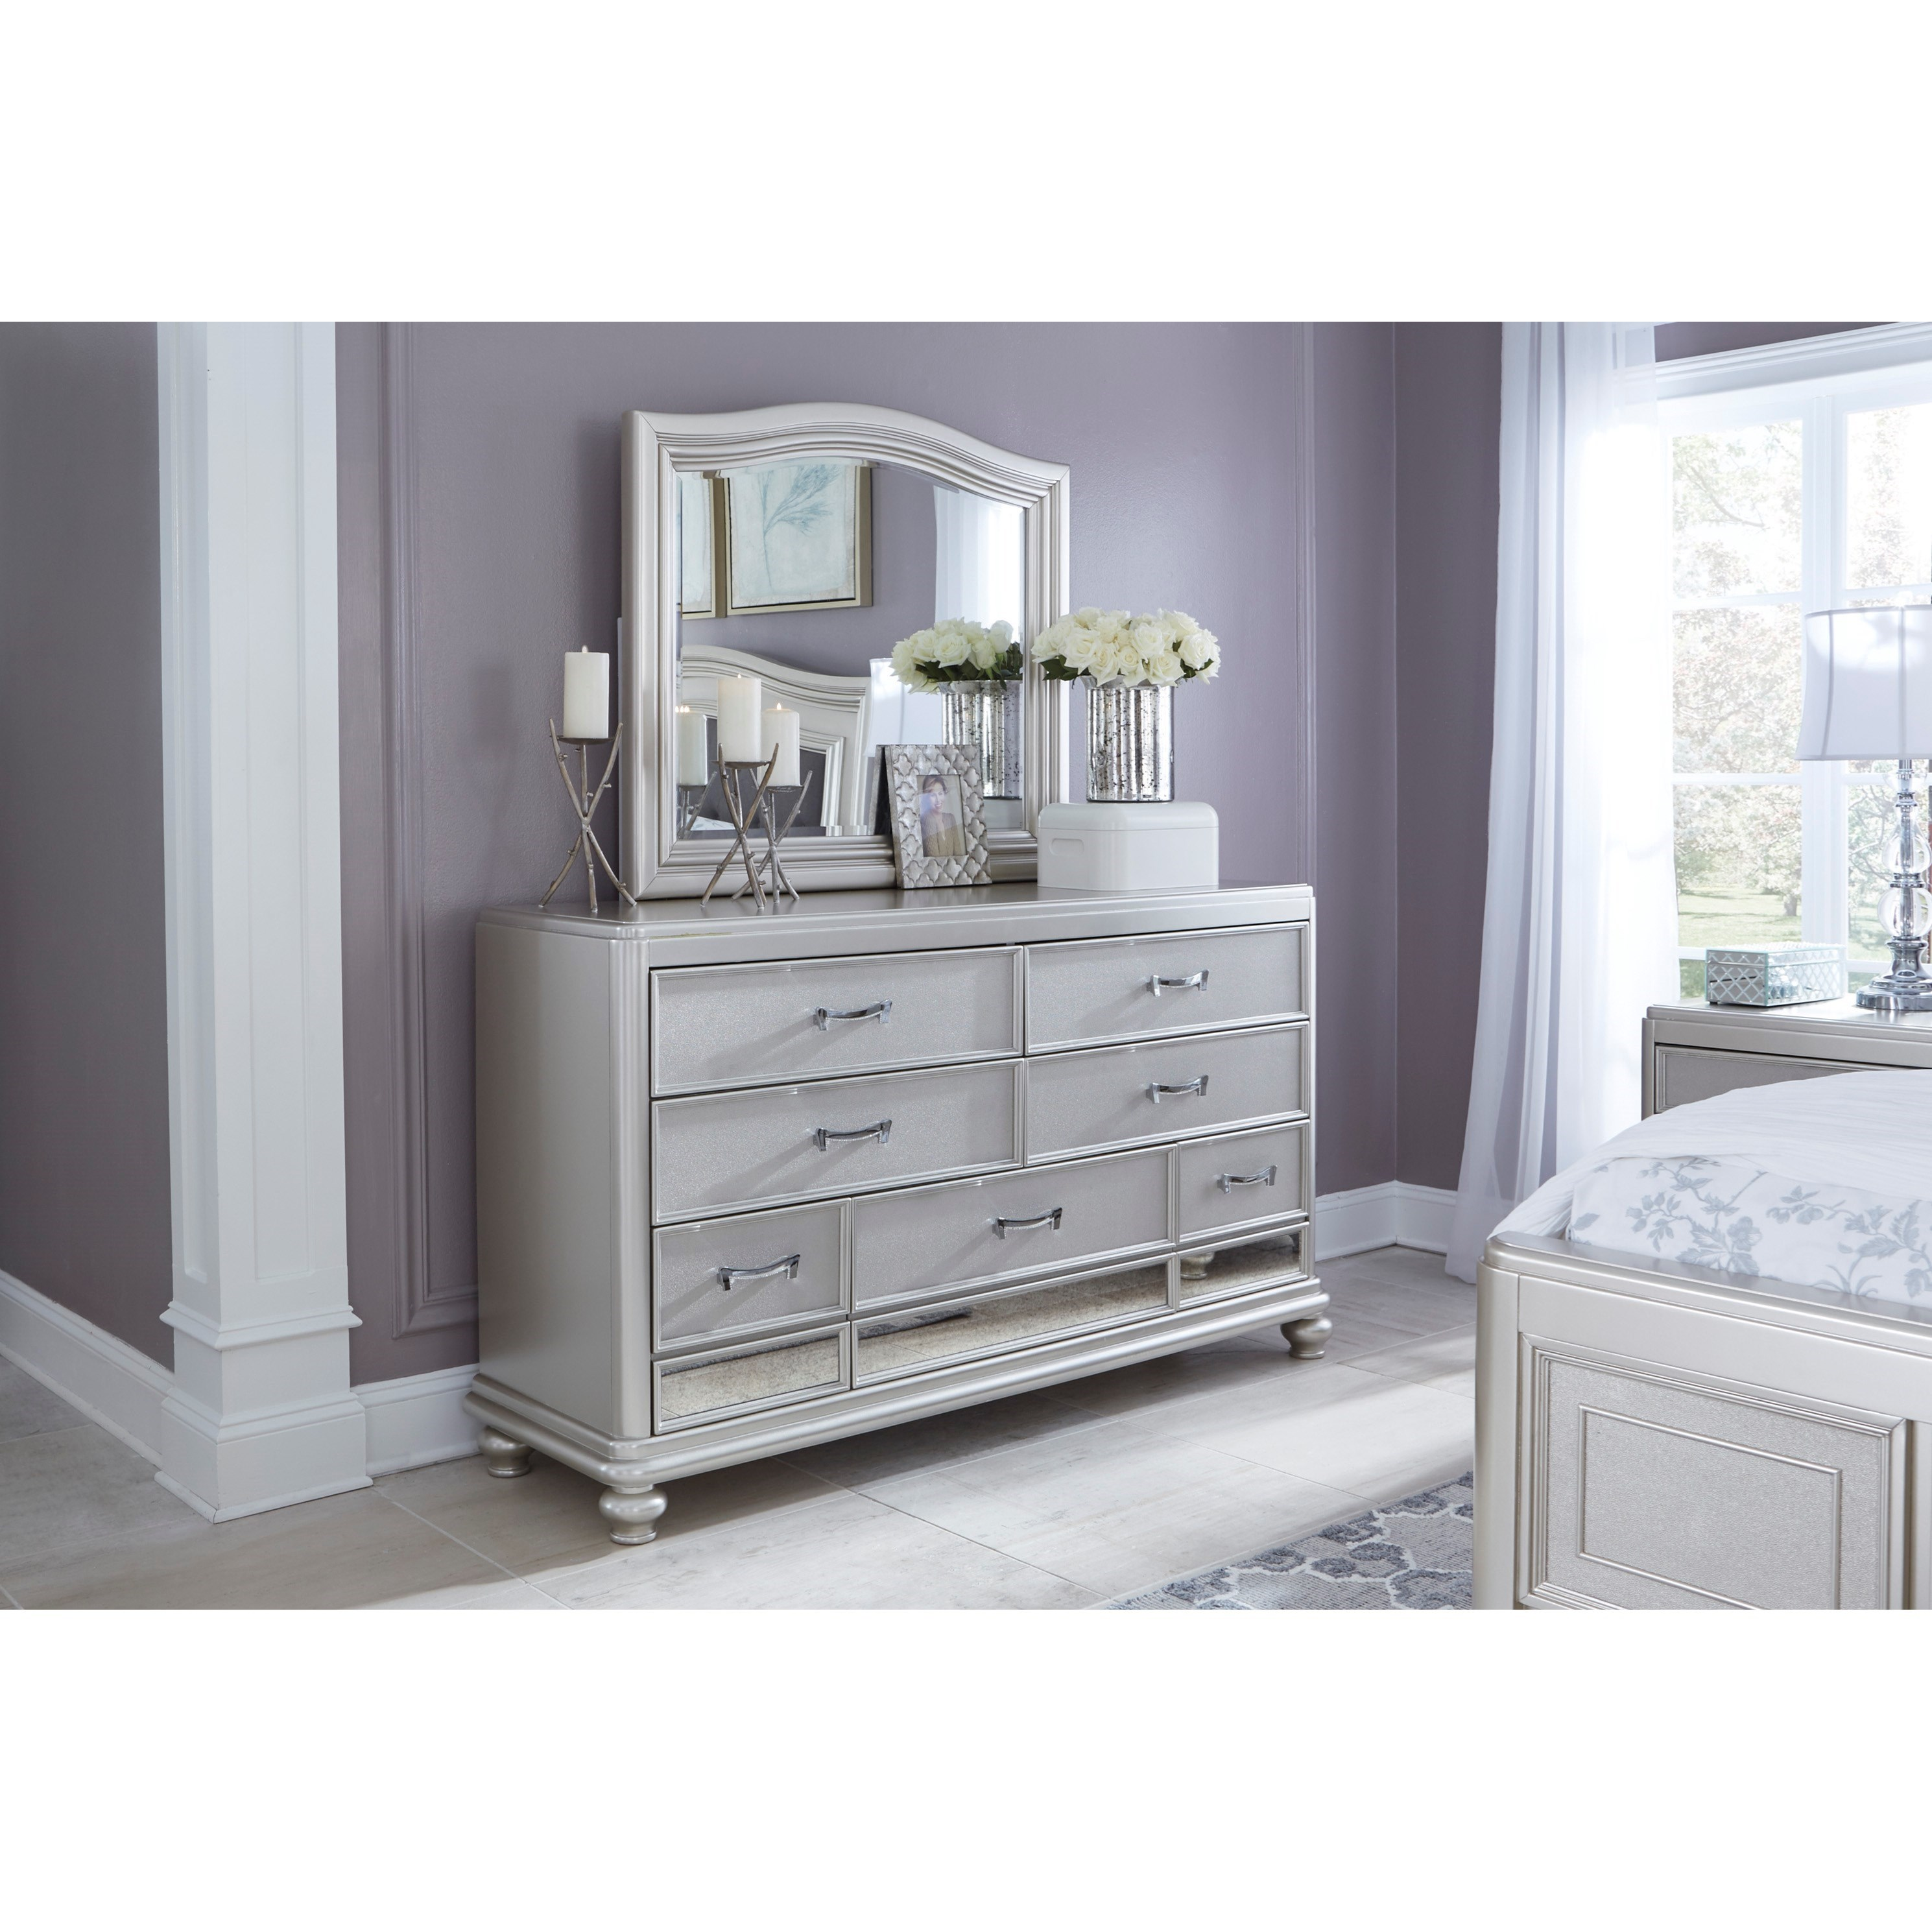 Signature Design By Ashley Coralayne Dresser & Arched